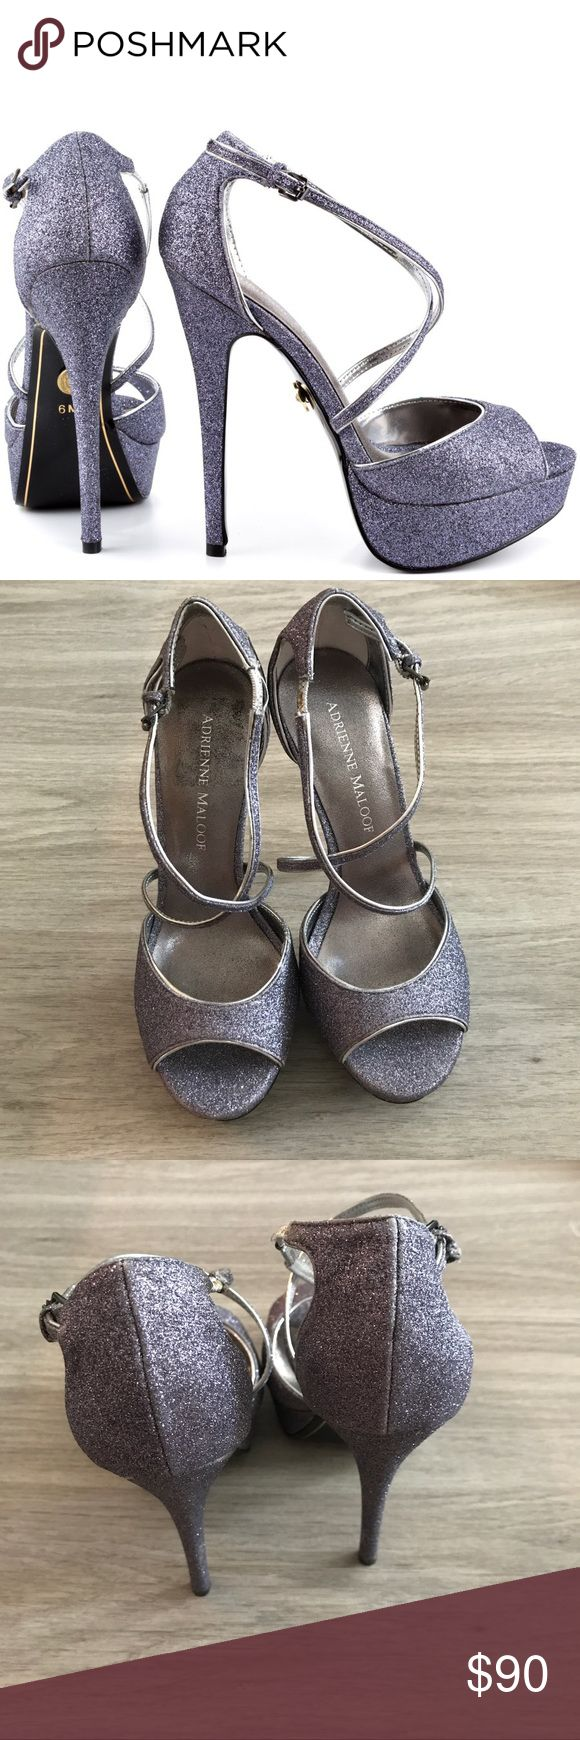 "Size 6 Adrienne Maloof Yvonne Platform Heels Adrienne Maloof from the Real Housewives of Beverly Hills. Yvonne Platform Heels in Pewter. These have a 5"" heel and 1.5"" platform. New condition. Adrienne Maloof Shoes Heels"